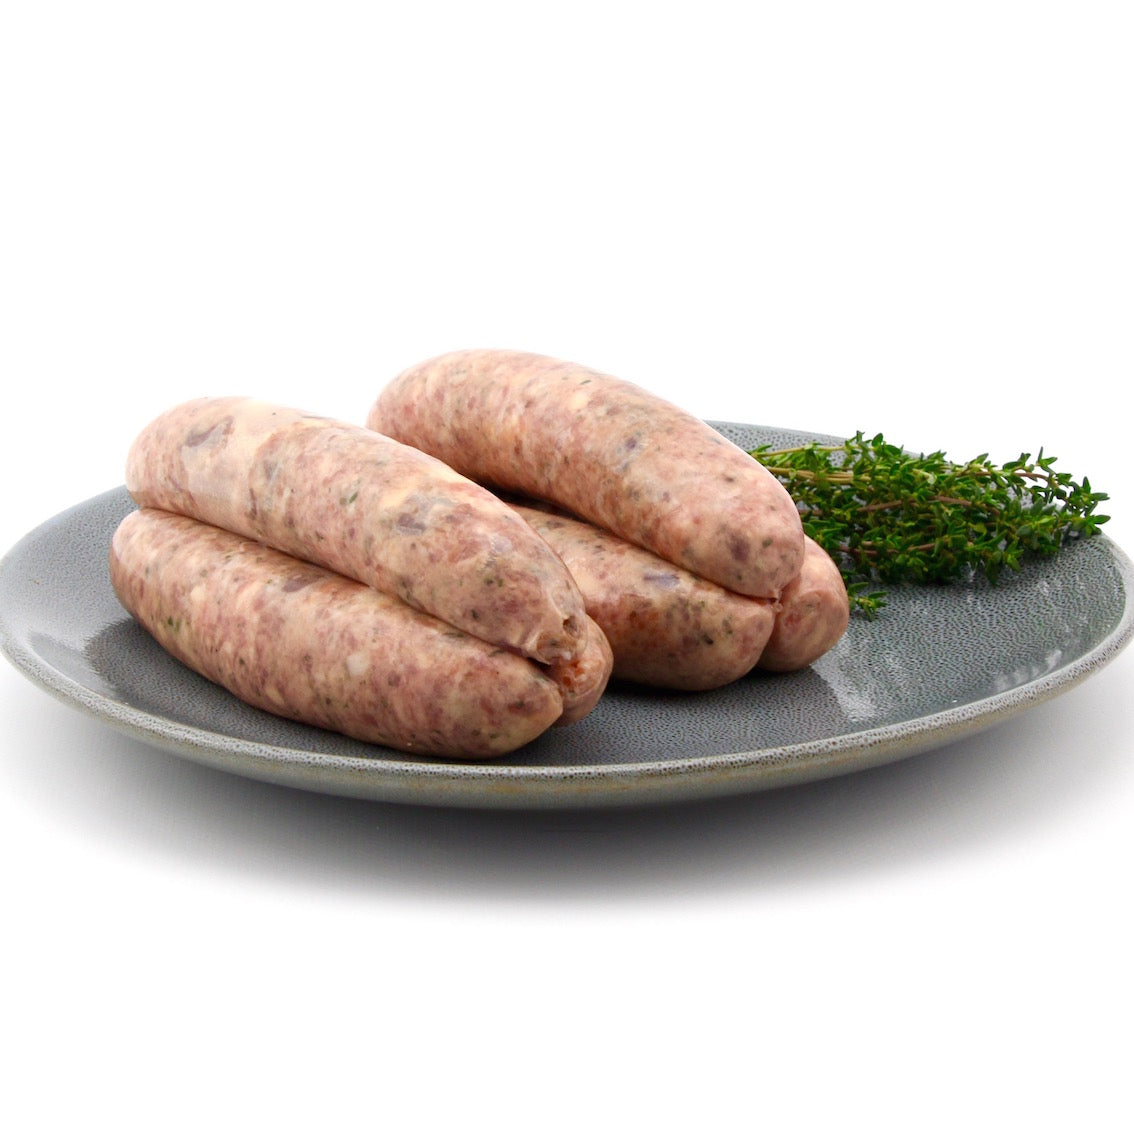 Pork Belly Sausages with Caramelised Beetroot and Halloumi Cheese x 6 (approx. 600g - 650g)